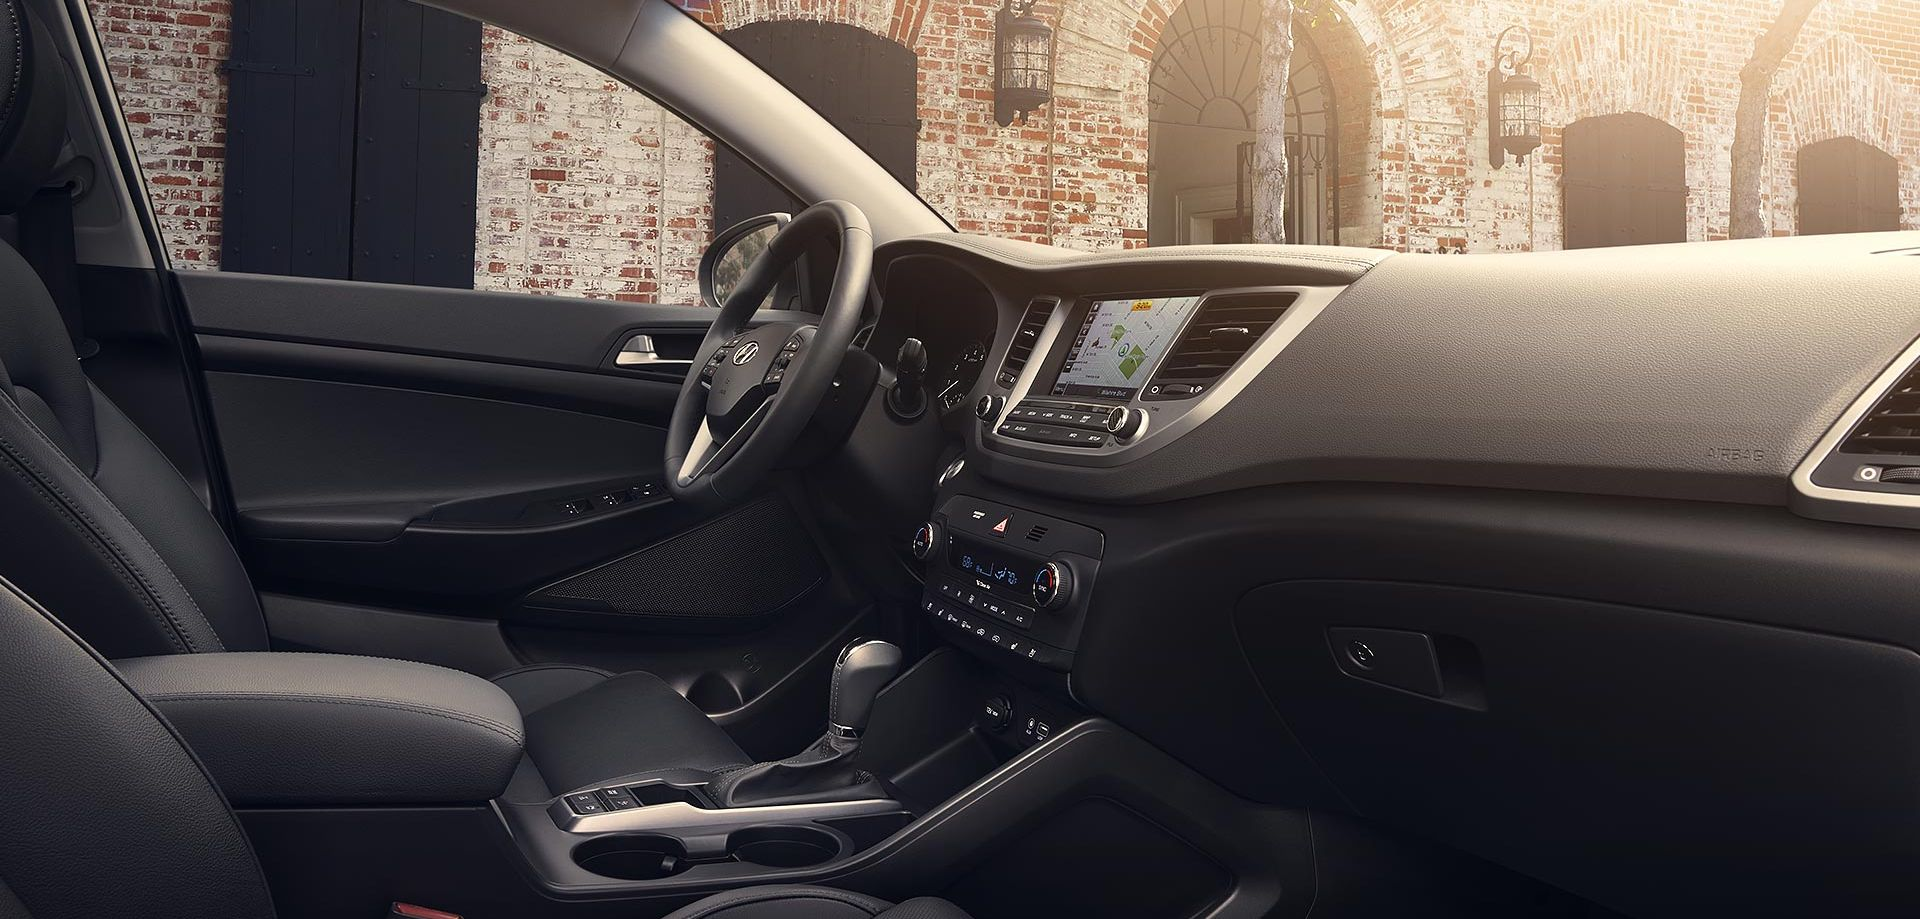 Accommodating Interior of the 2018 Hyundai Tuscon